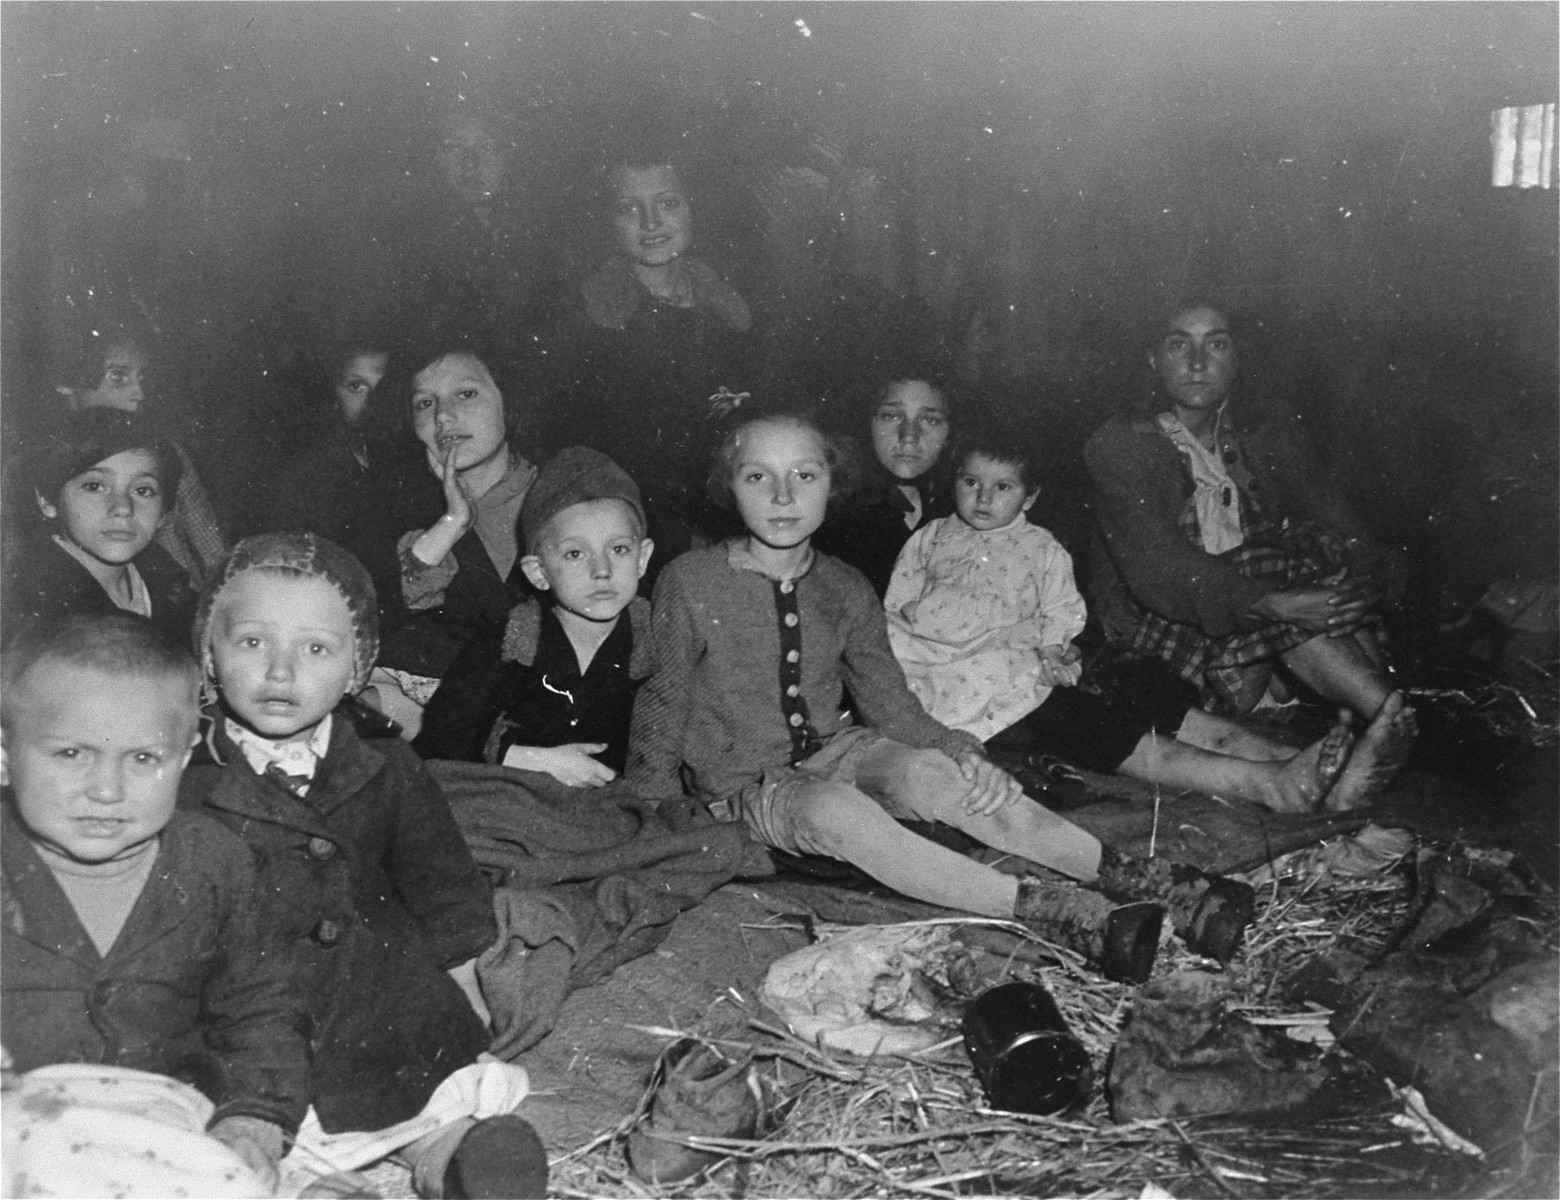 Women and children survivors sit on the floor of a barracks in the newly liberated Gunskirchen concentration camp.